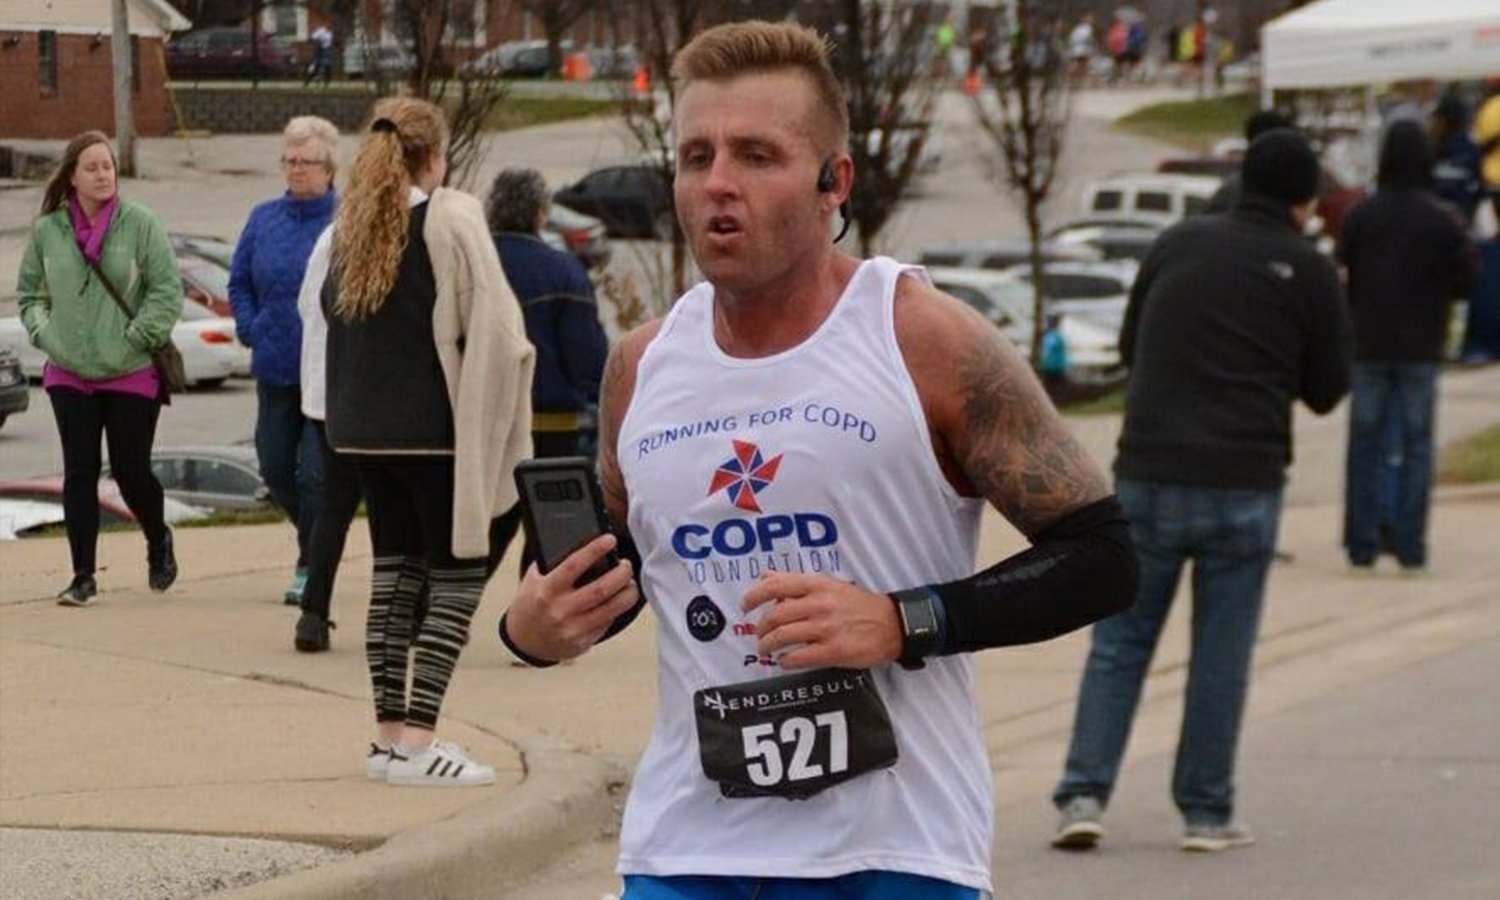 Justin Daniels On Running For COPD Awareness